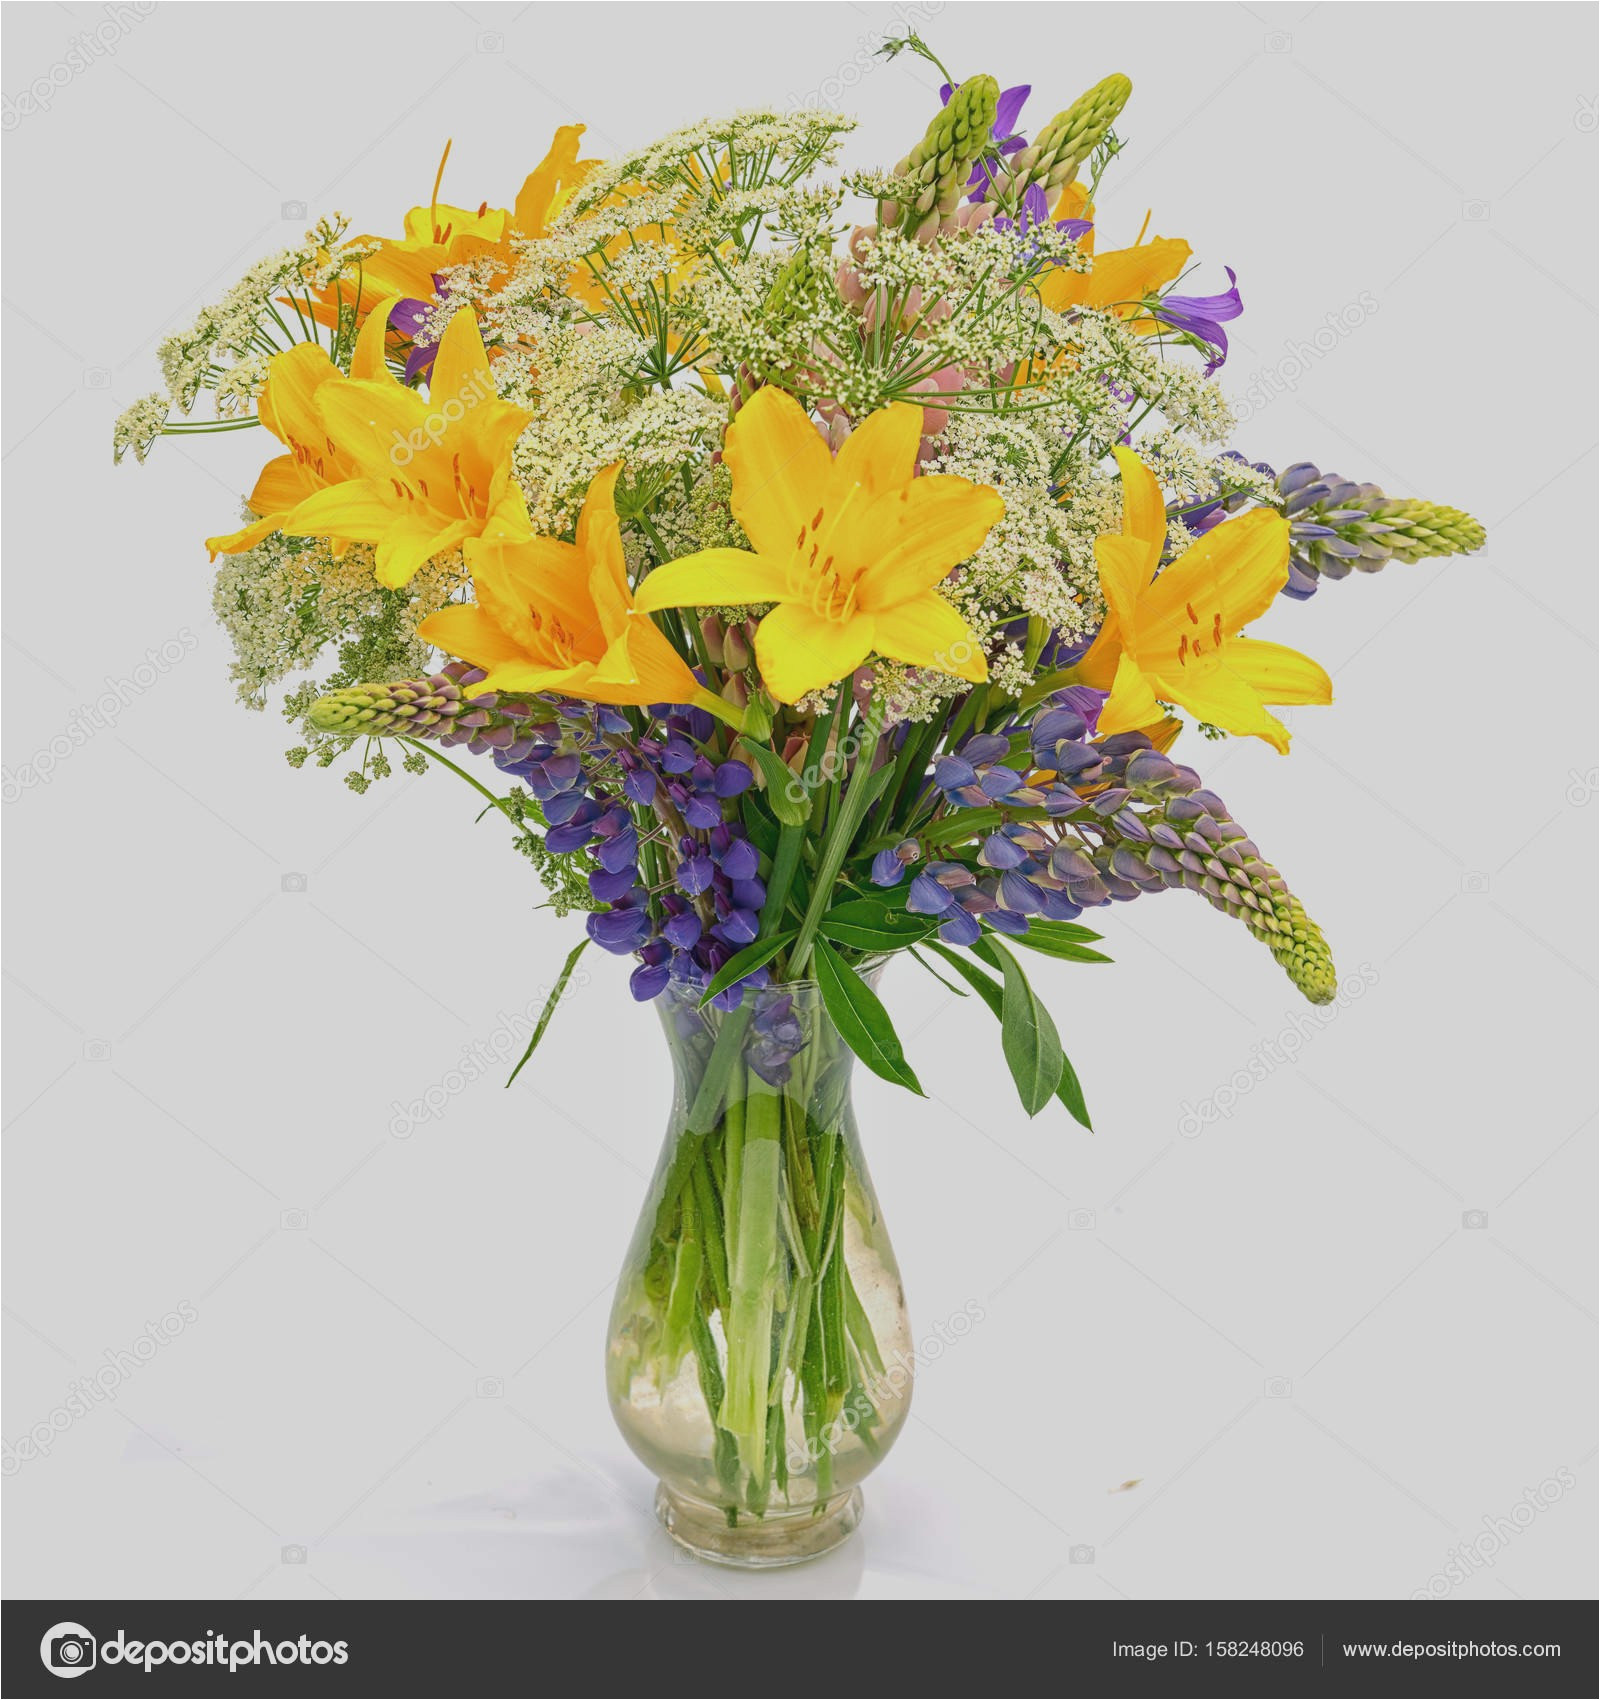 Glass Wall Vase for Flowers Of New Flowers Yellow Suthep Photo Galery In Yellow Glass Vase Photograph Bouquet Od Wild Flowers Achillea Millefolium Day Lily and Lupine Of Yellow